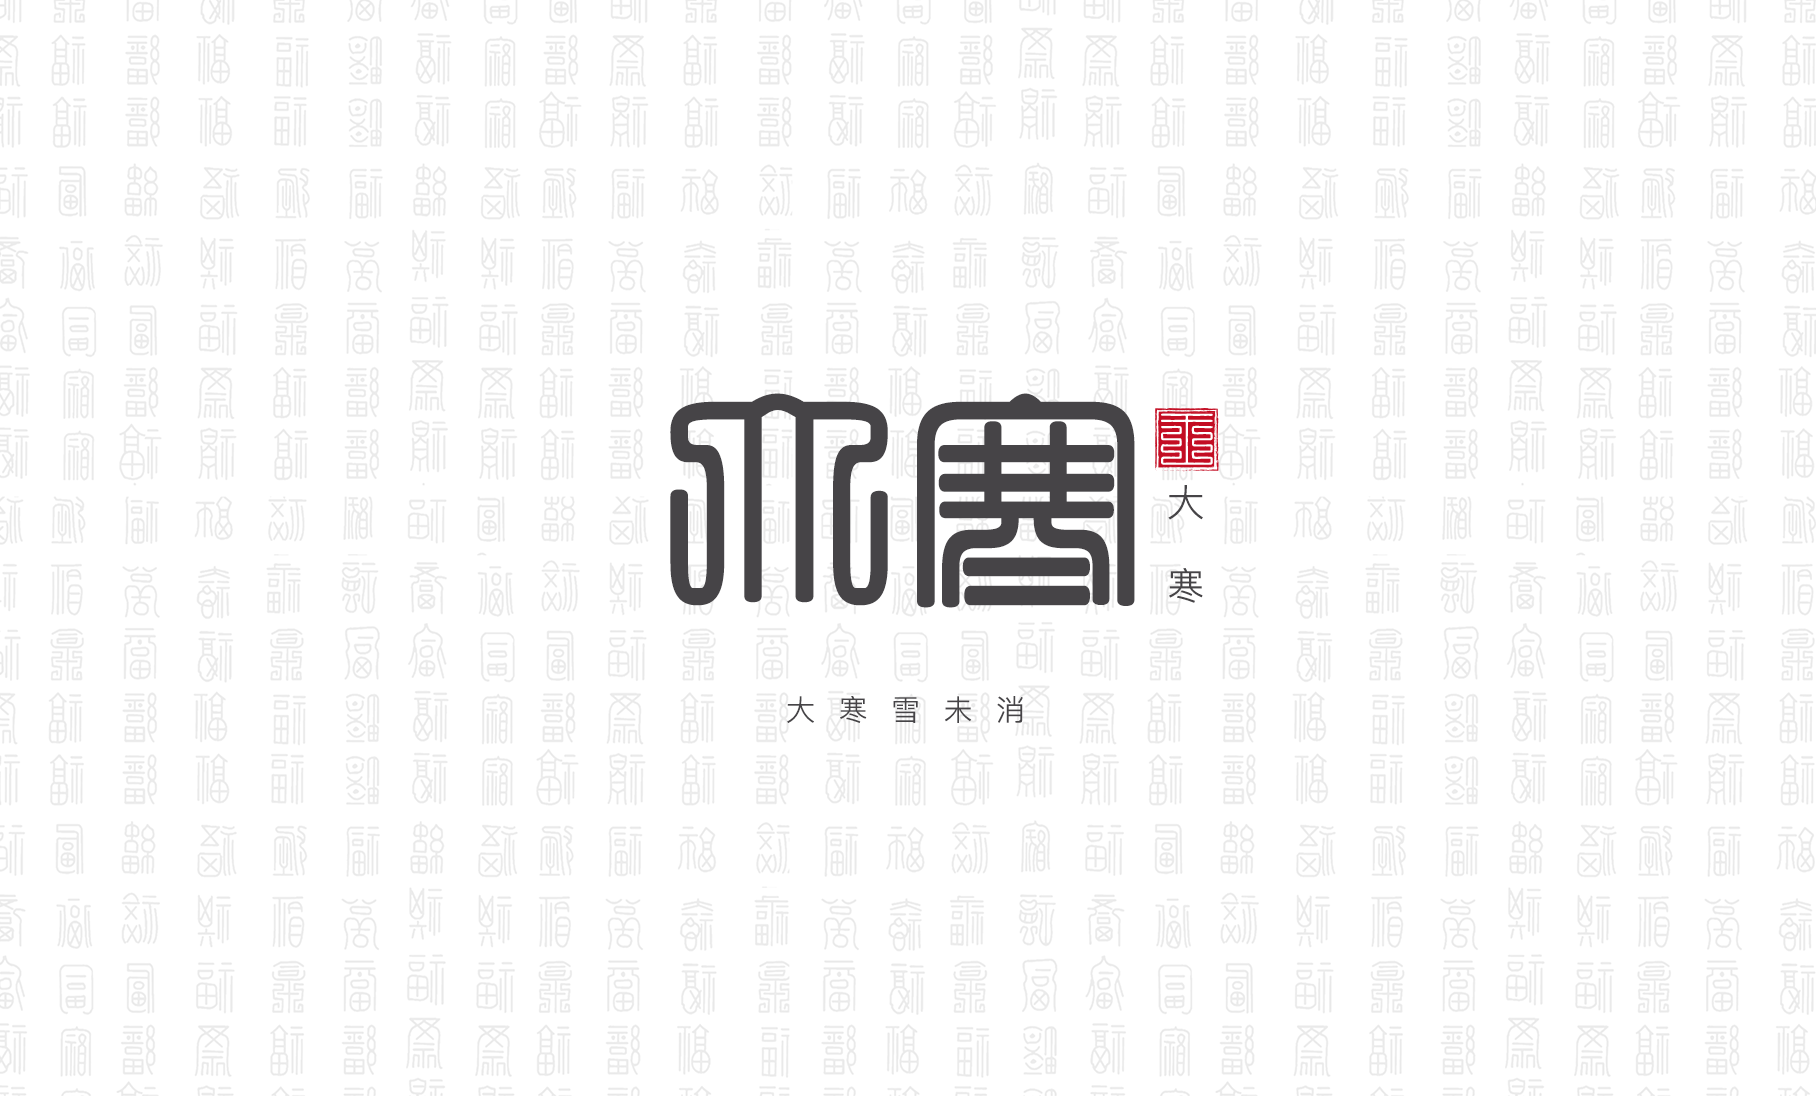 Traditional Chinese characters 24 solar terms characters